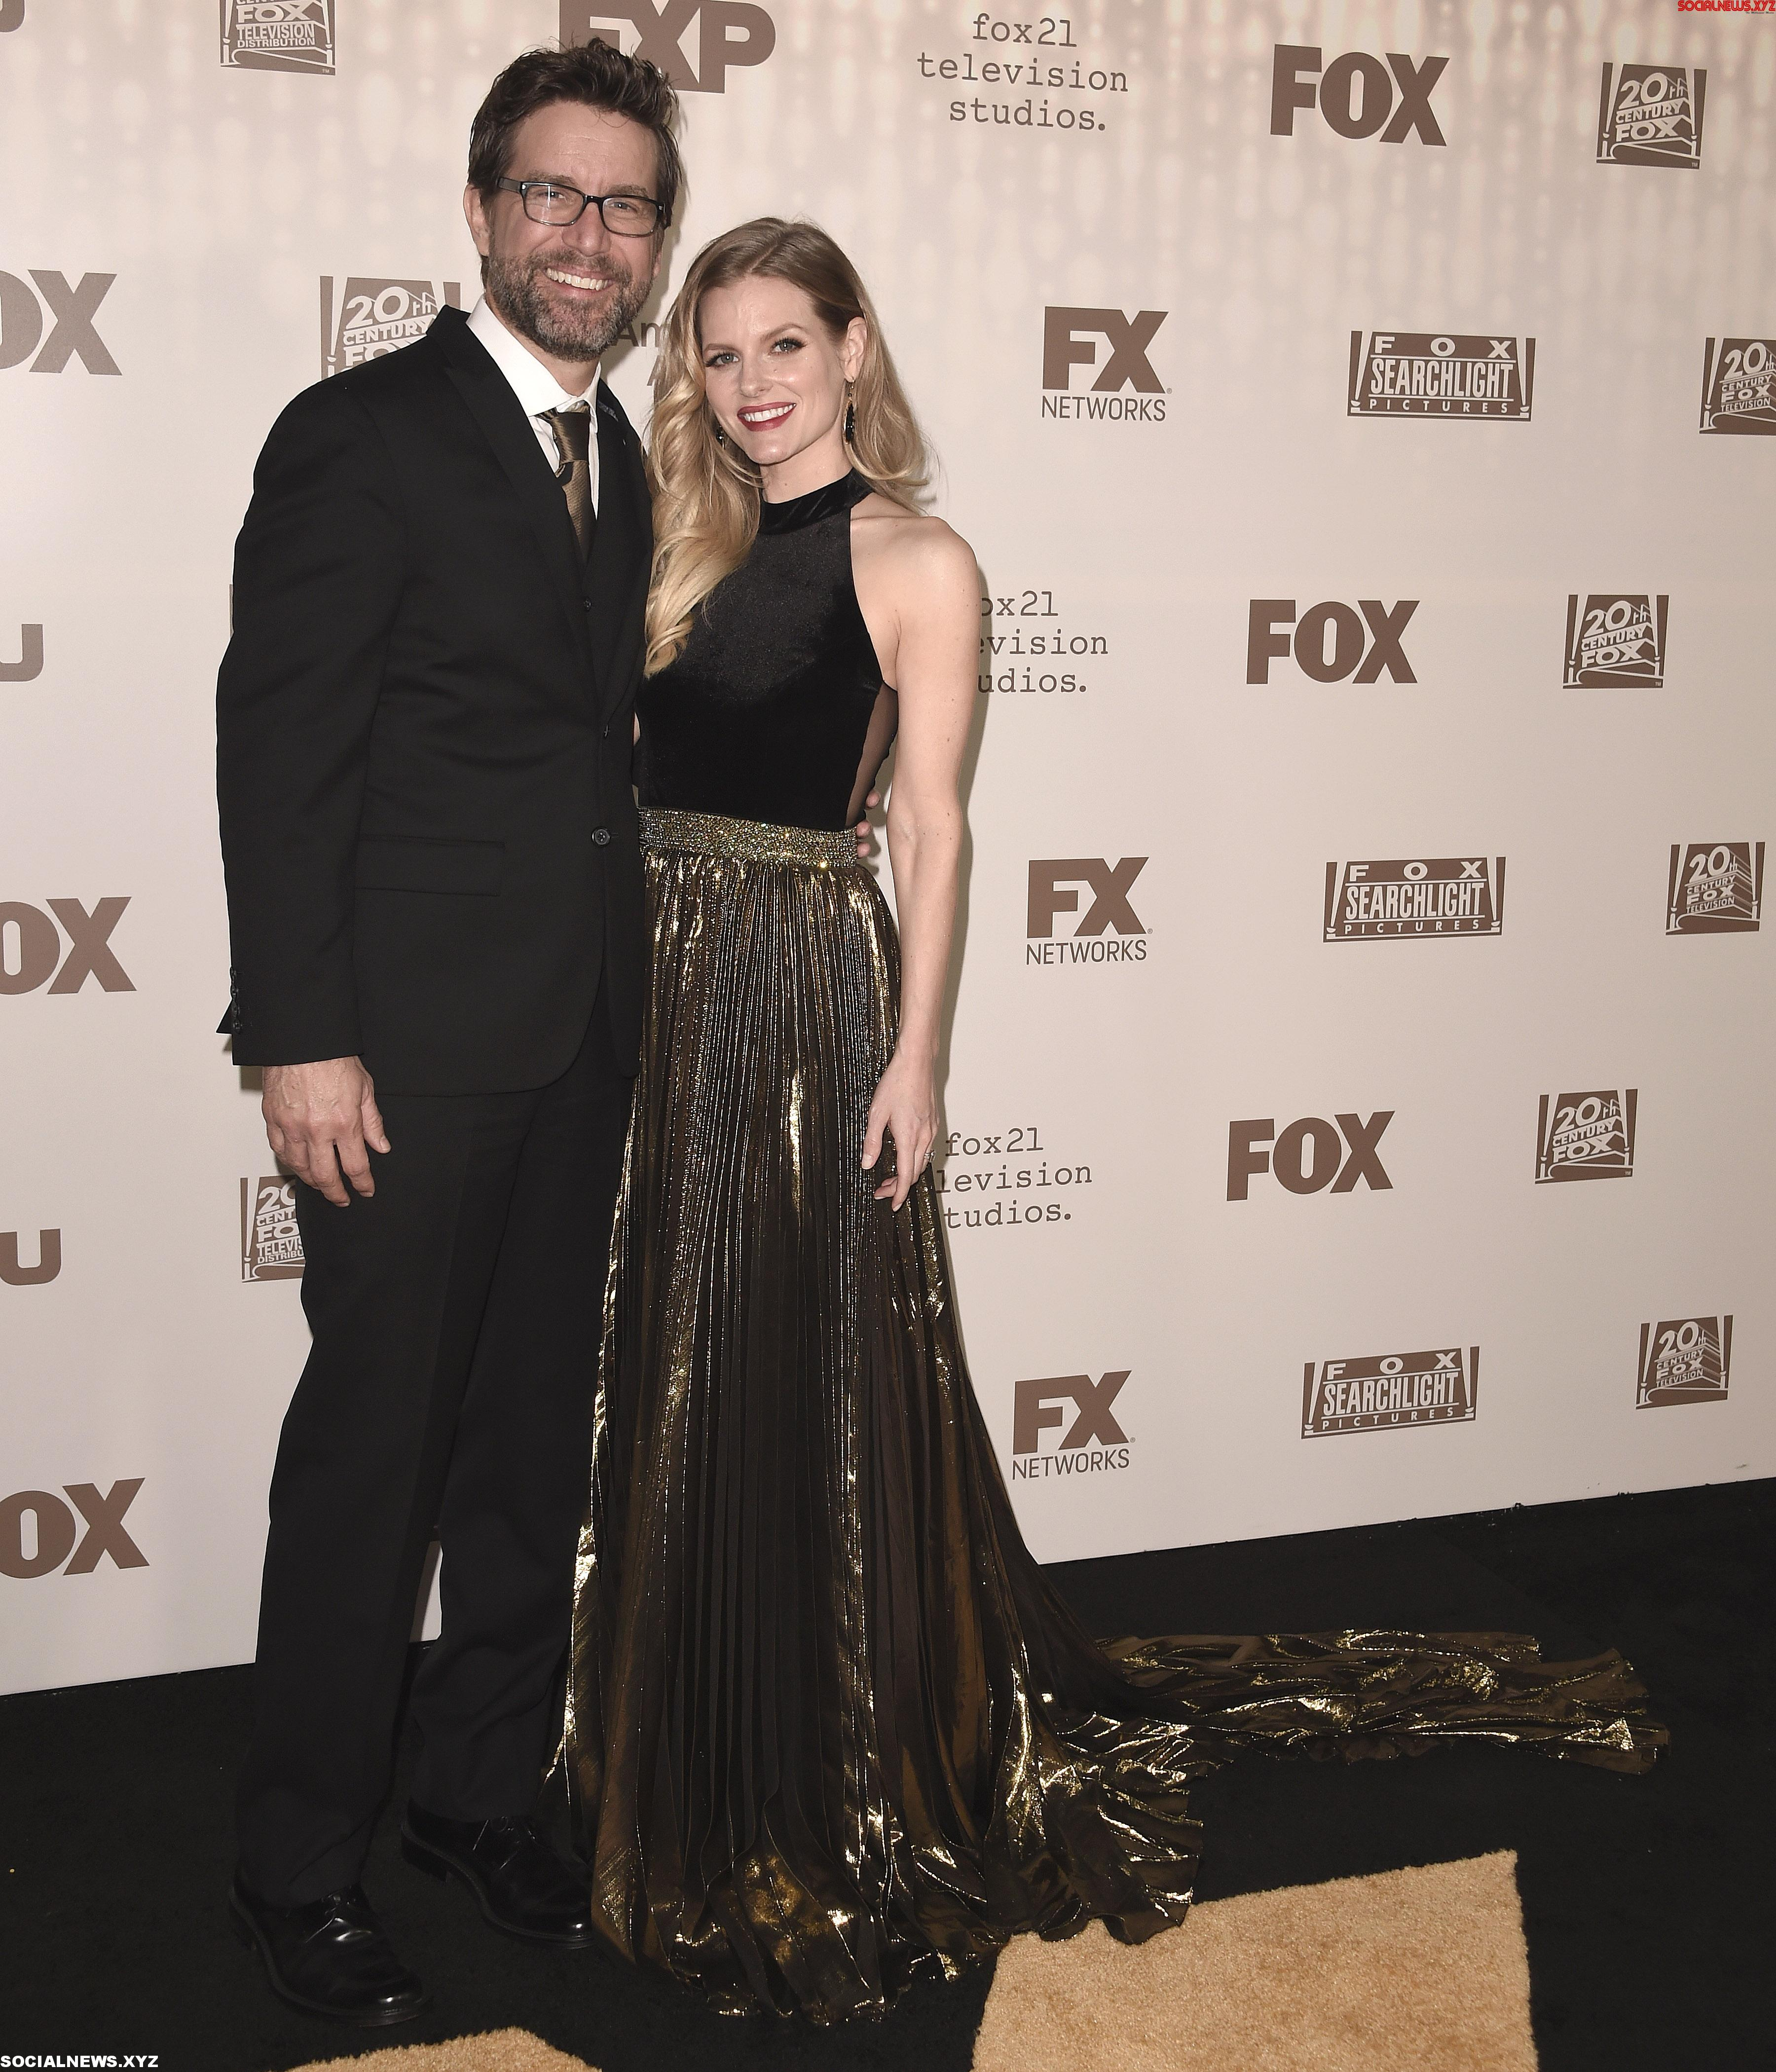 20th Century Fox At The 74th Annual Golden Globe Awards Gallery